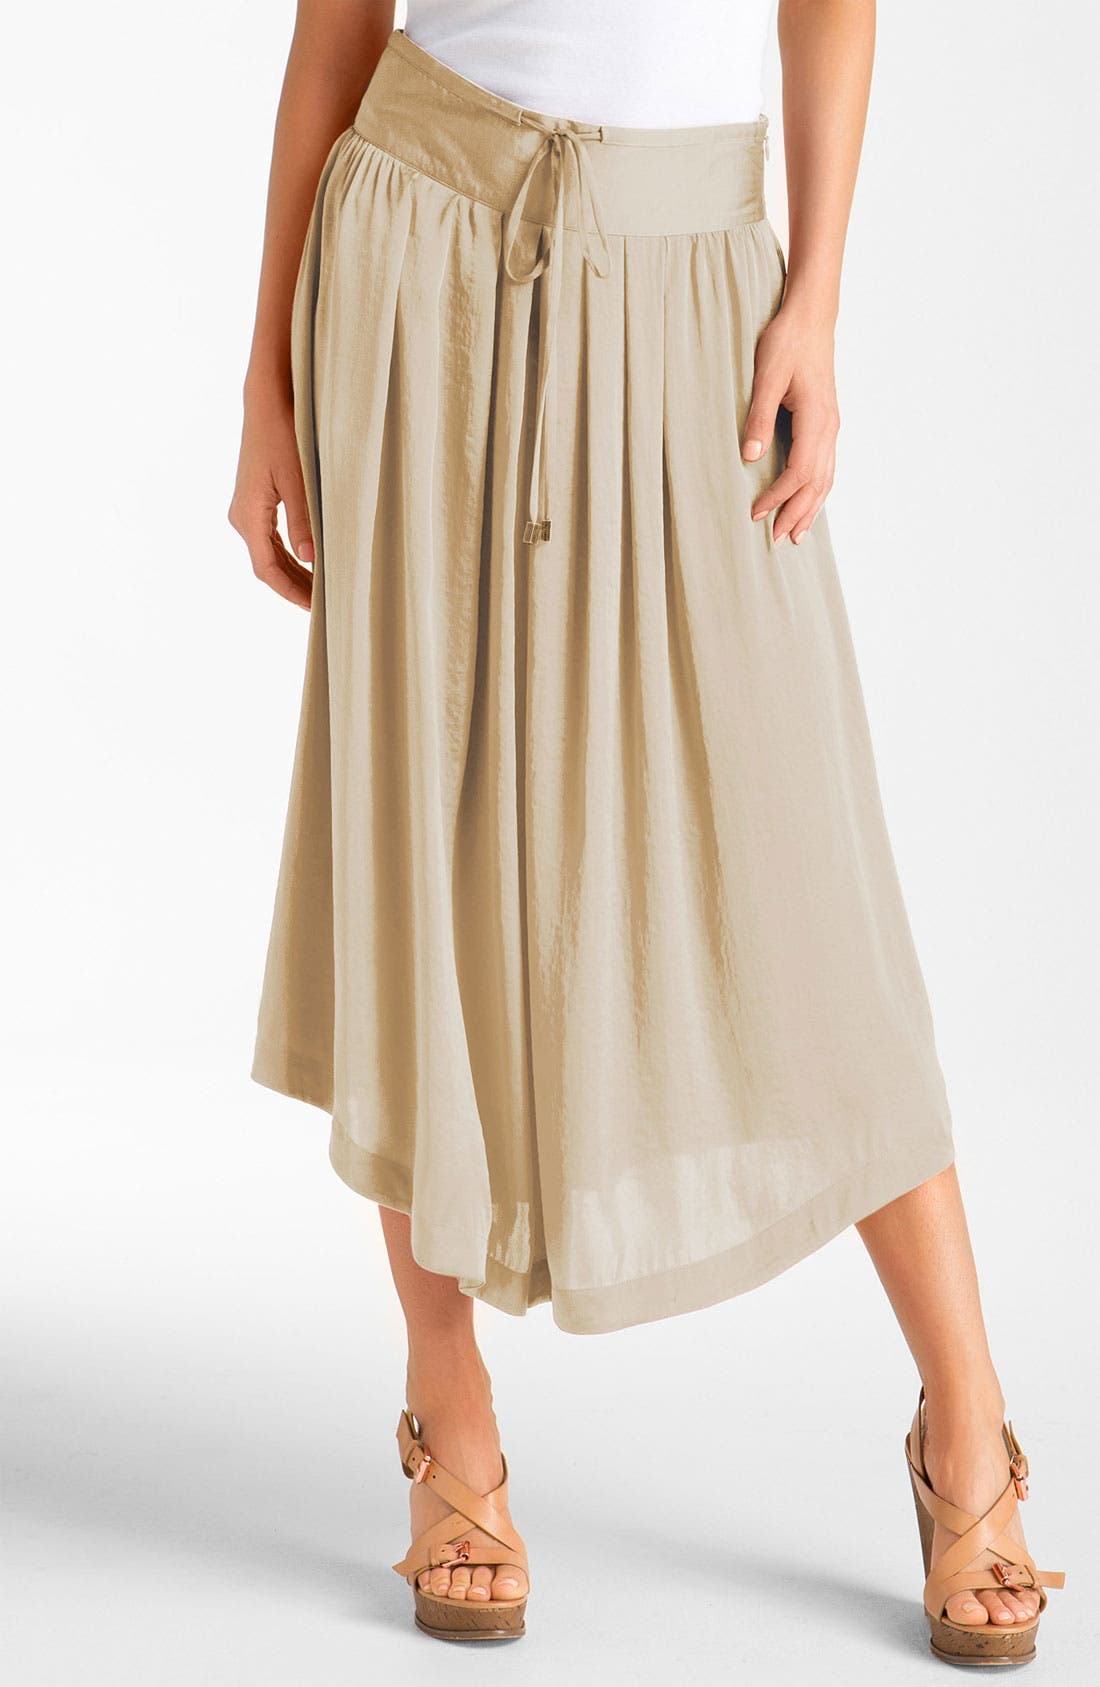 Alternate Image 1 Selected - Vince Camuto 'Shirttail Hem' Midi Skirt